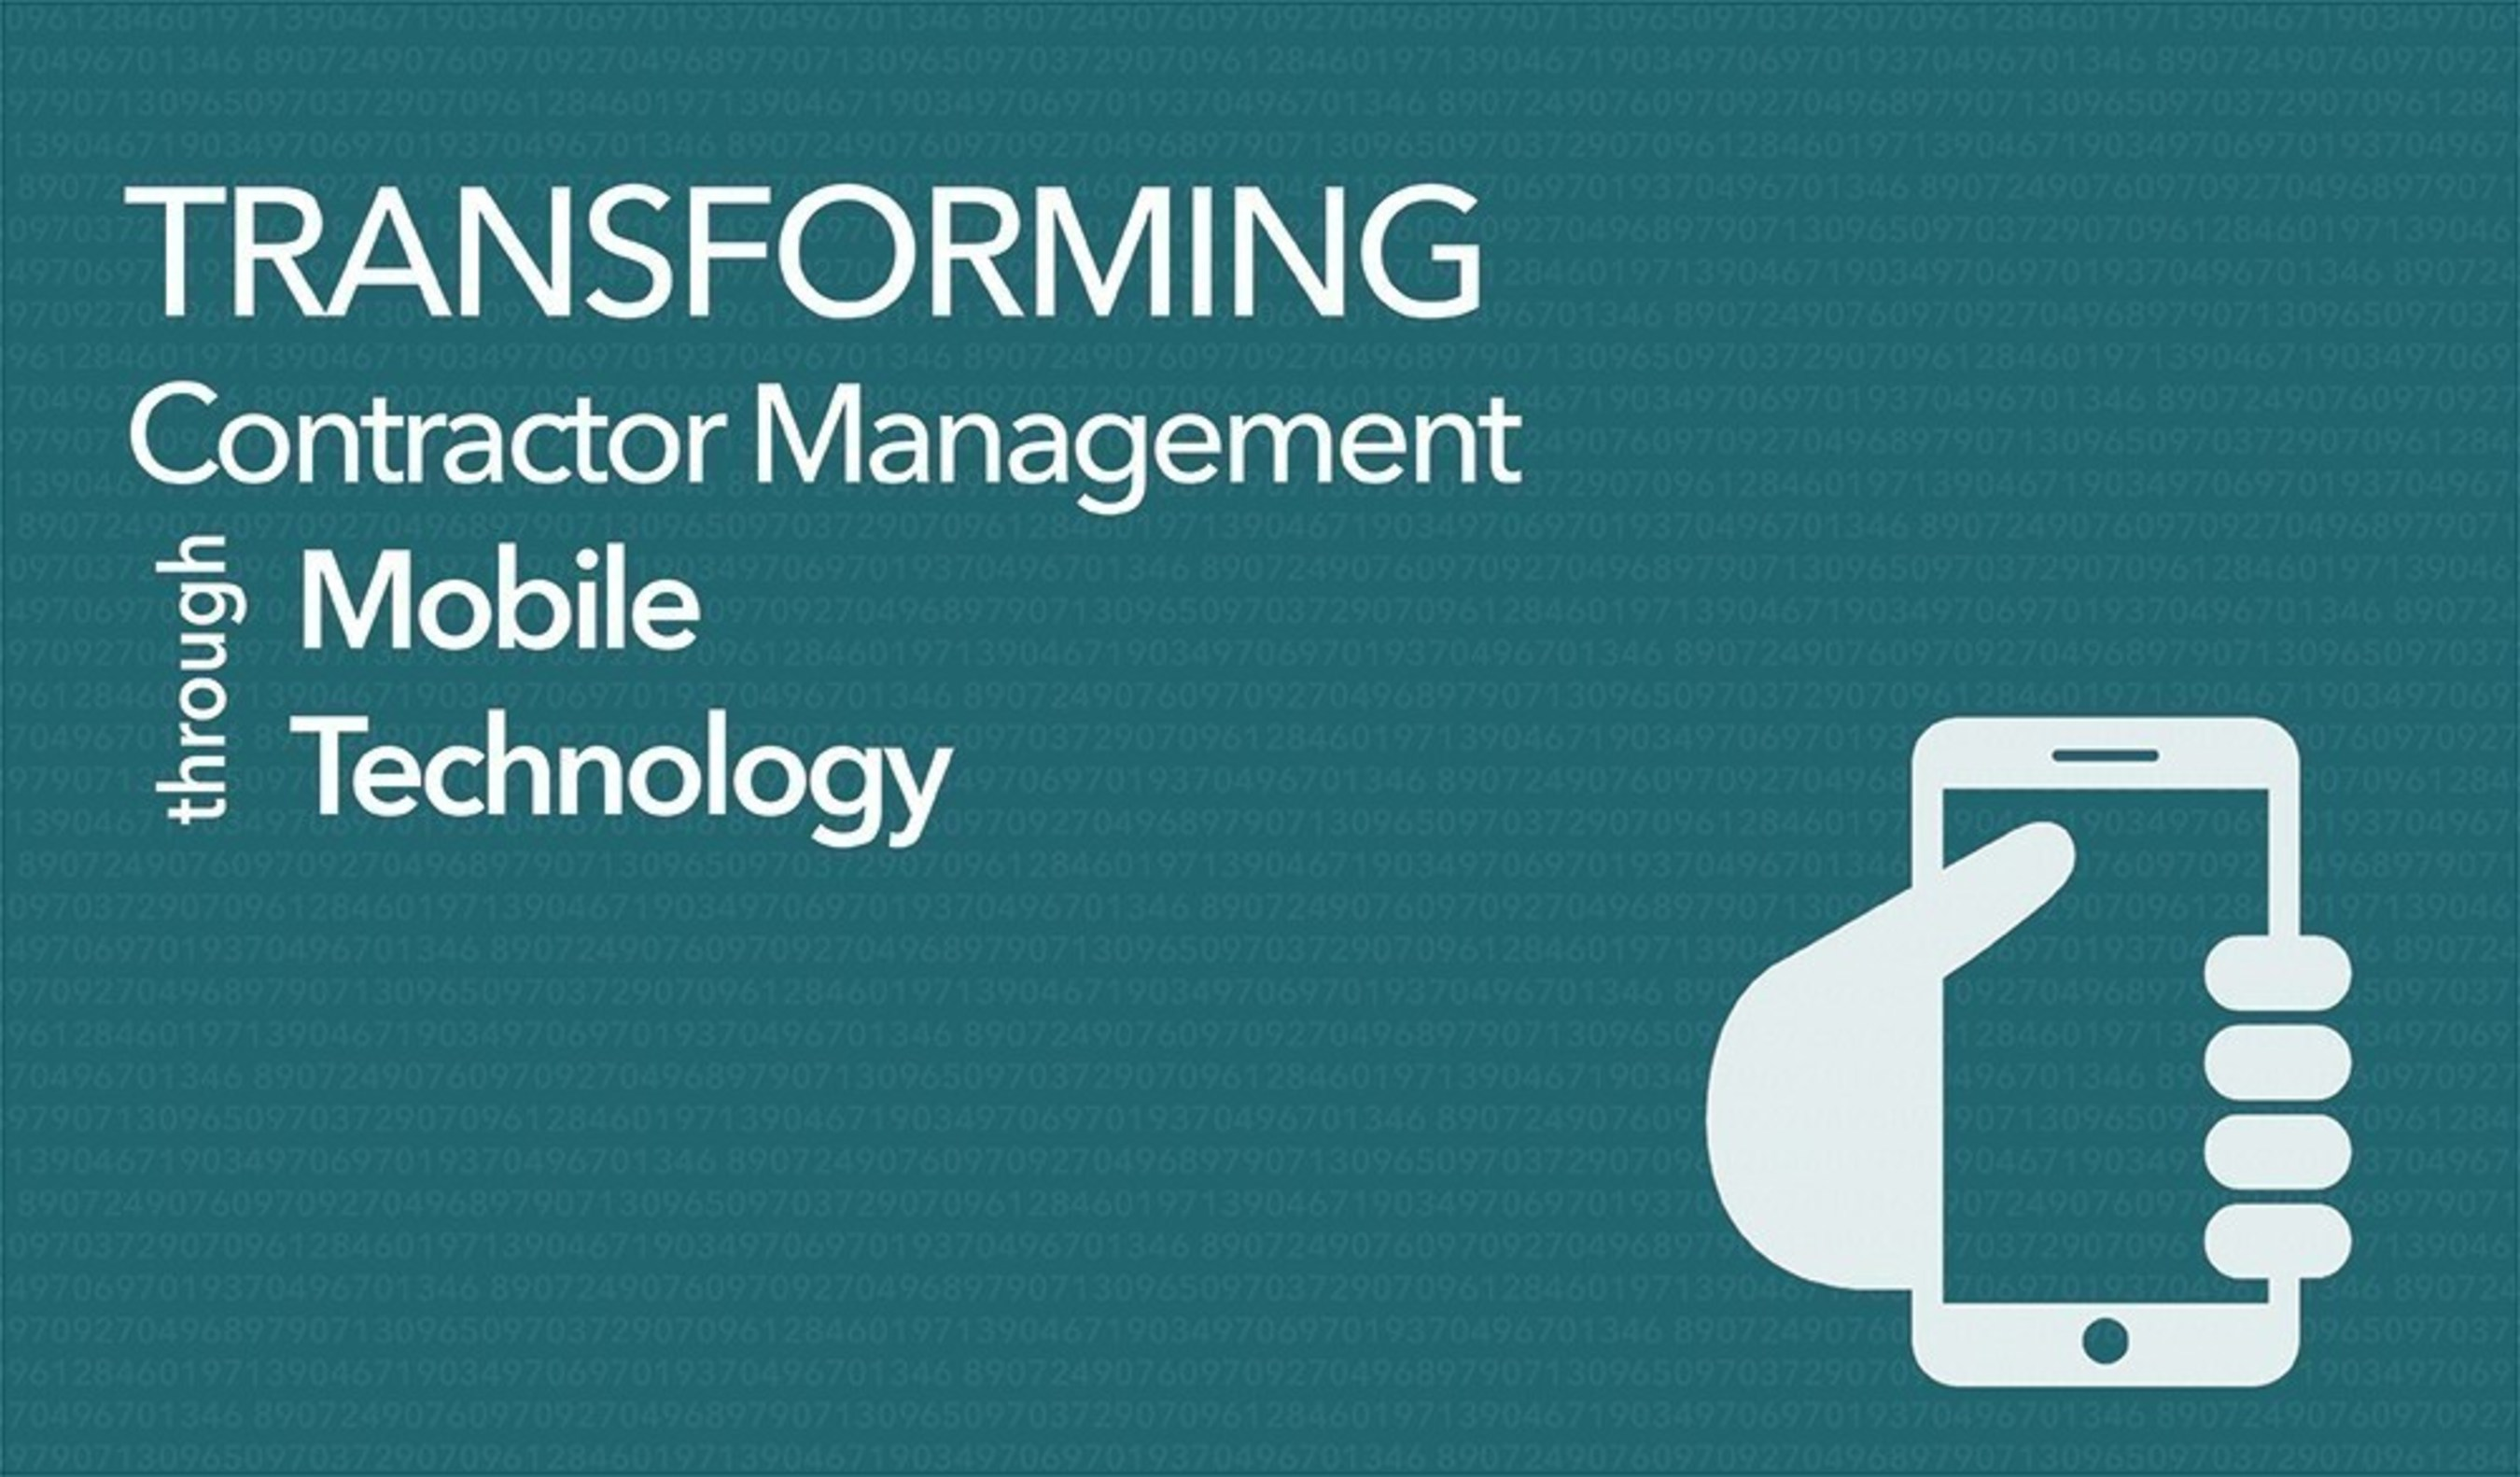 Transforming Contractor Management through Mobile Technology Webinar